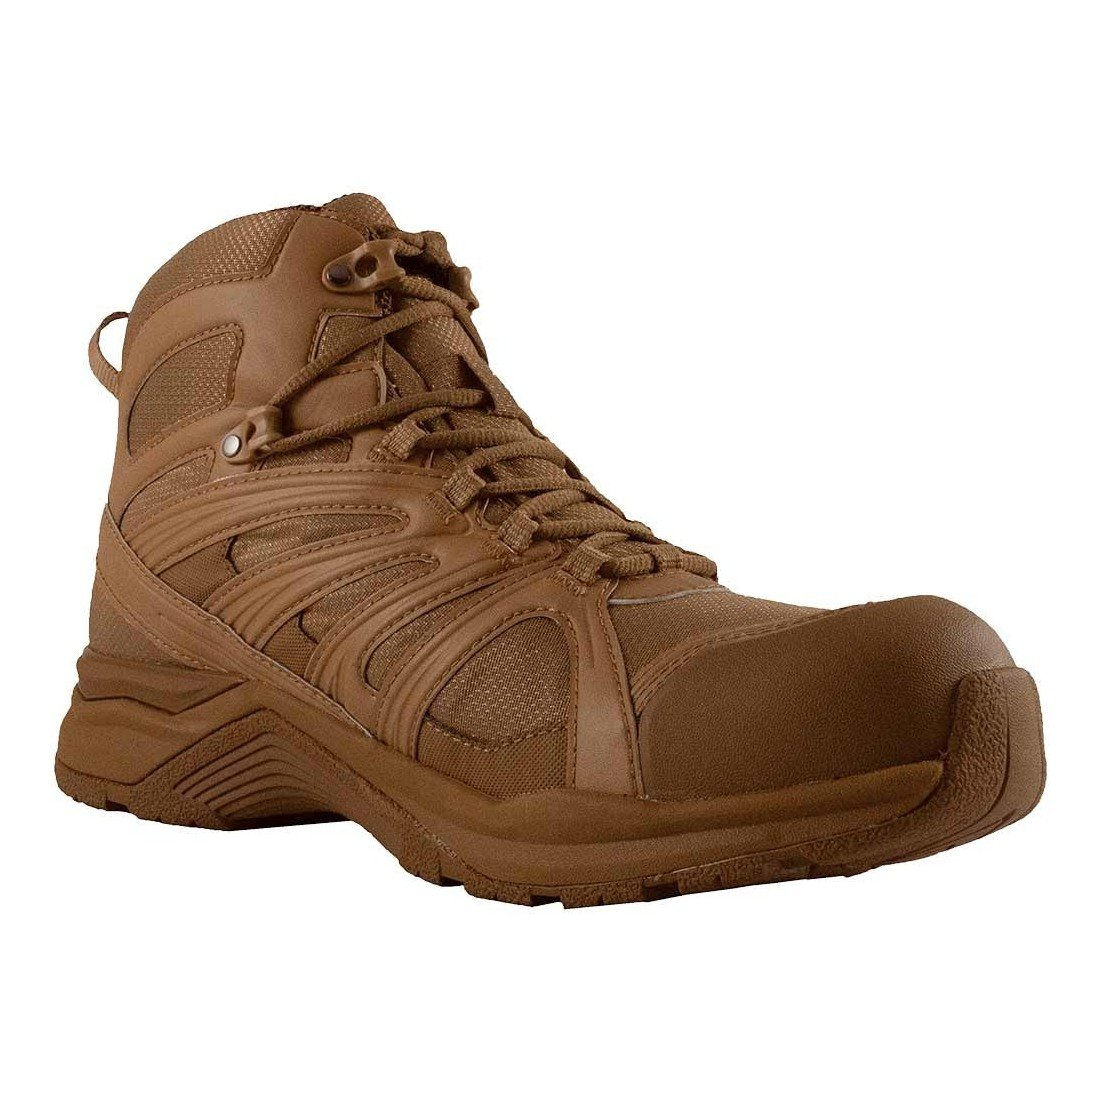 Altama 353203 AStiefeltabad Trail - Mid WP Coyote 46 (12.0)